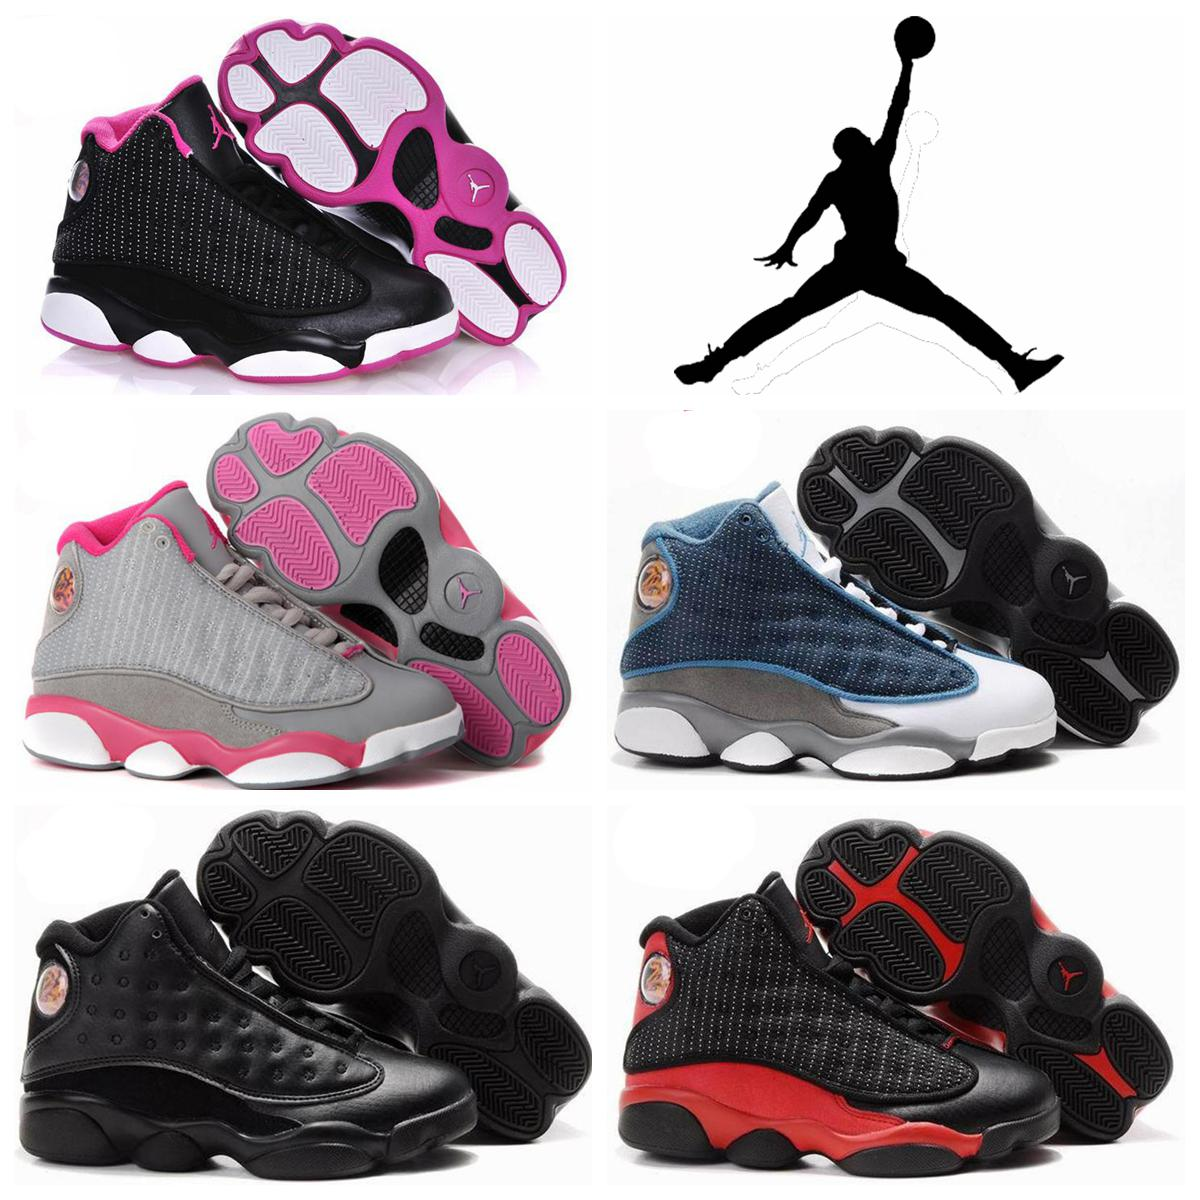 ff6e2385831 ... wholesale nike air jordan xiii 13 retro kid children shoes new white  wine red 9367a 56855